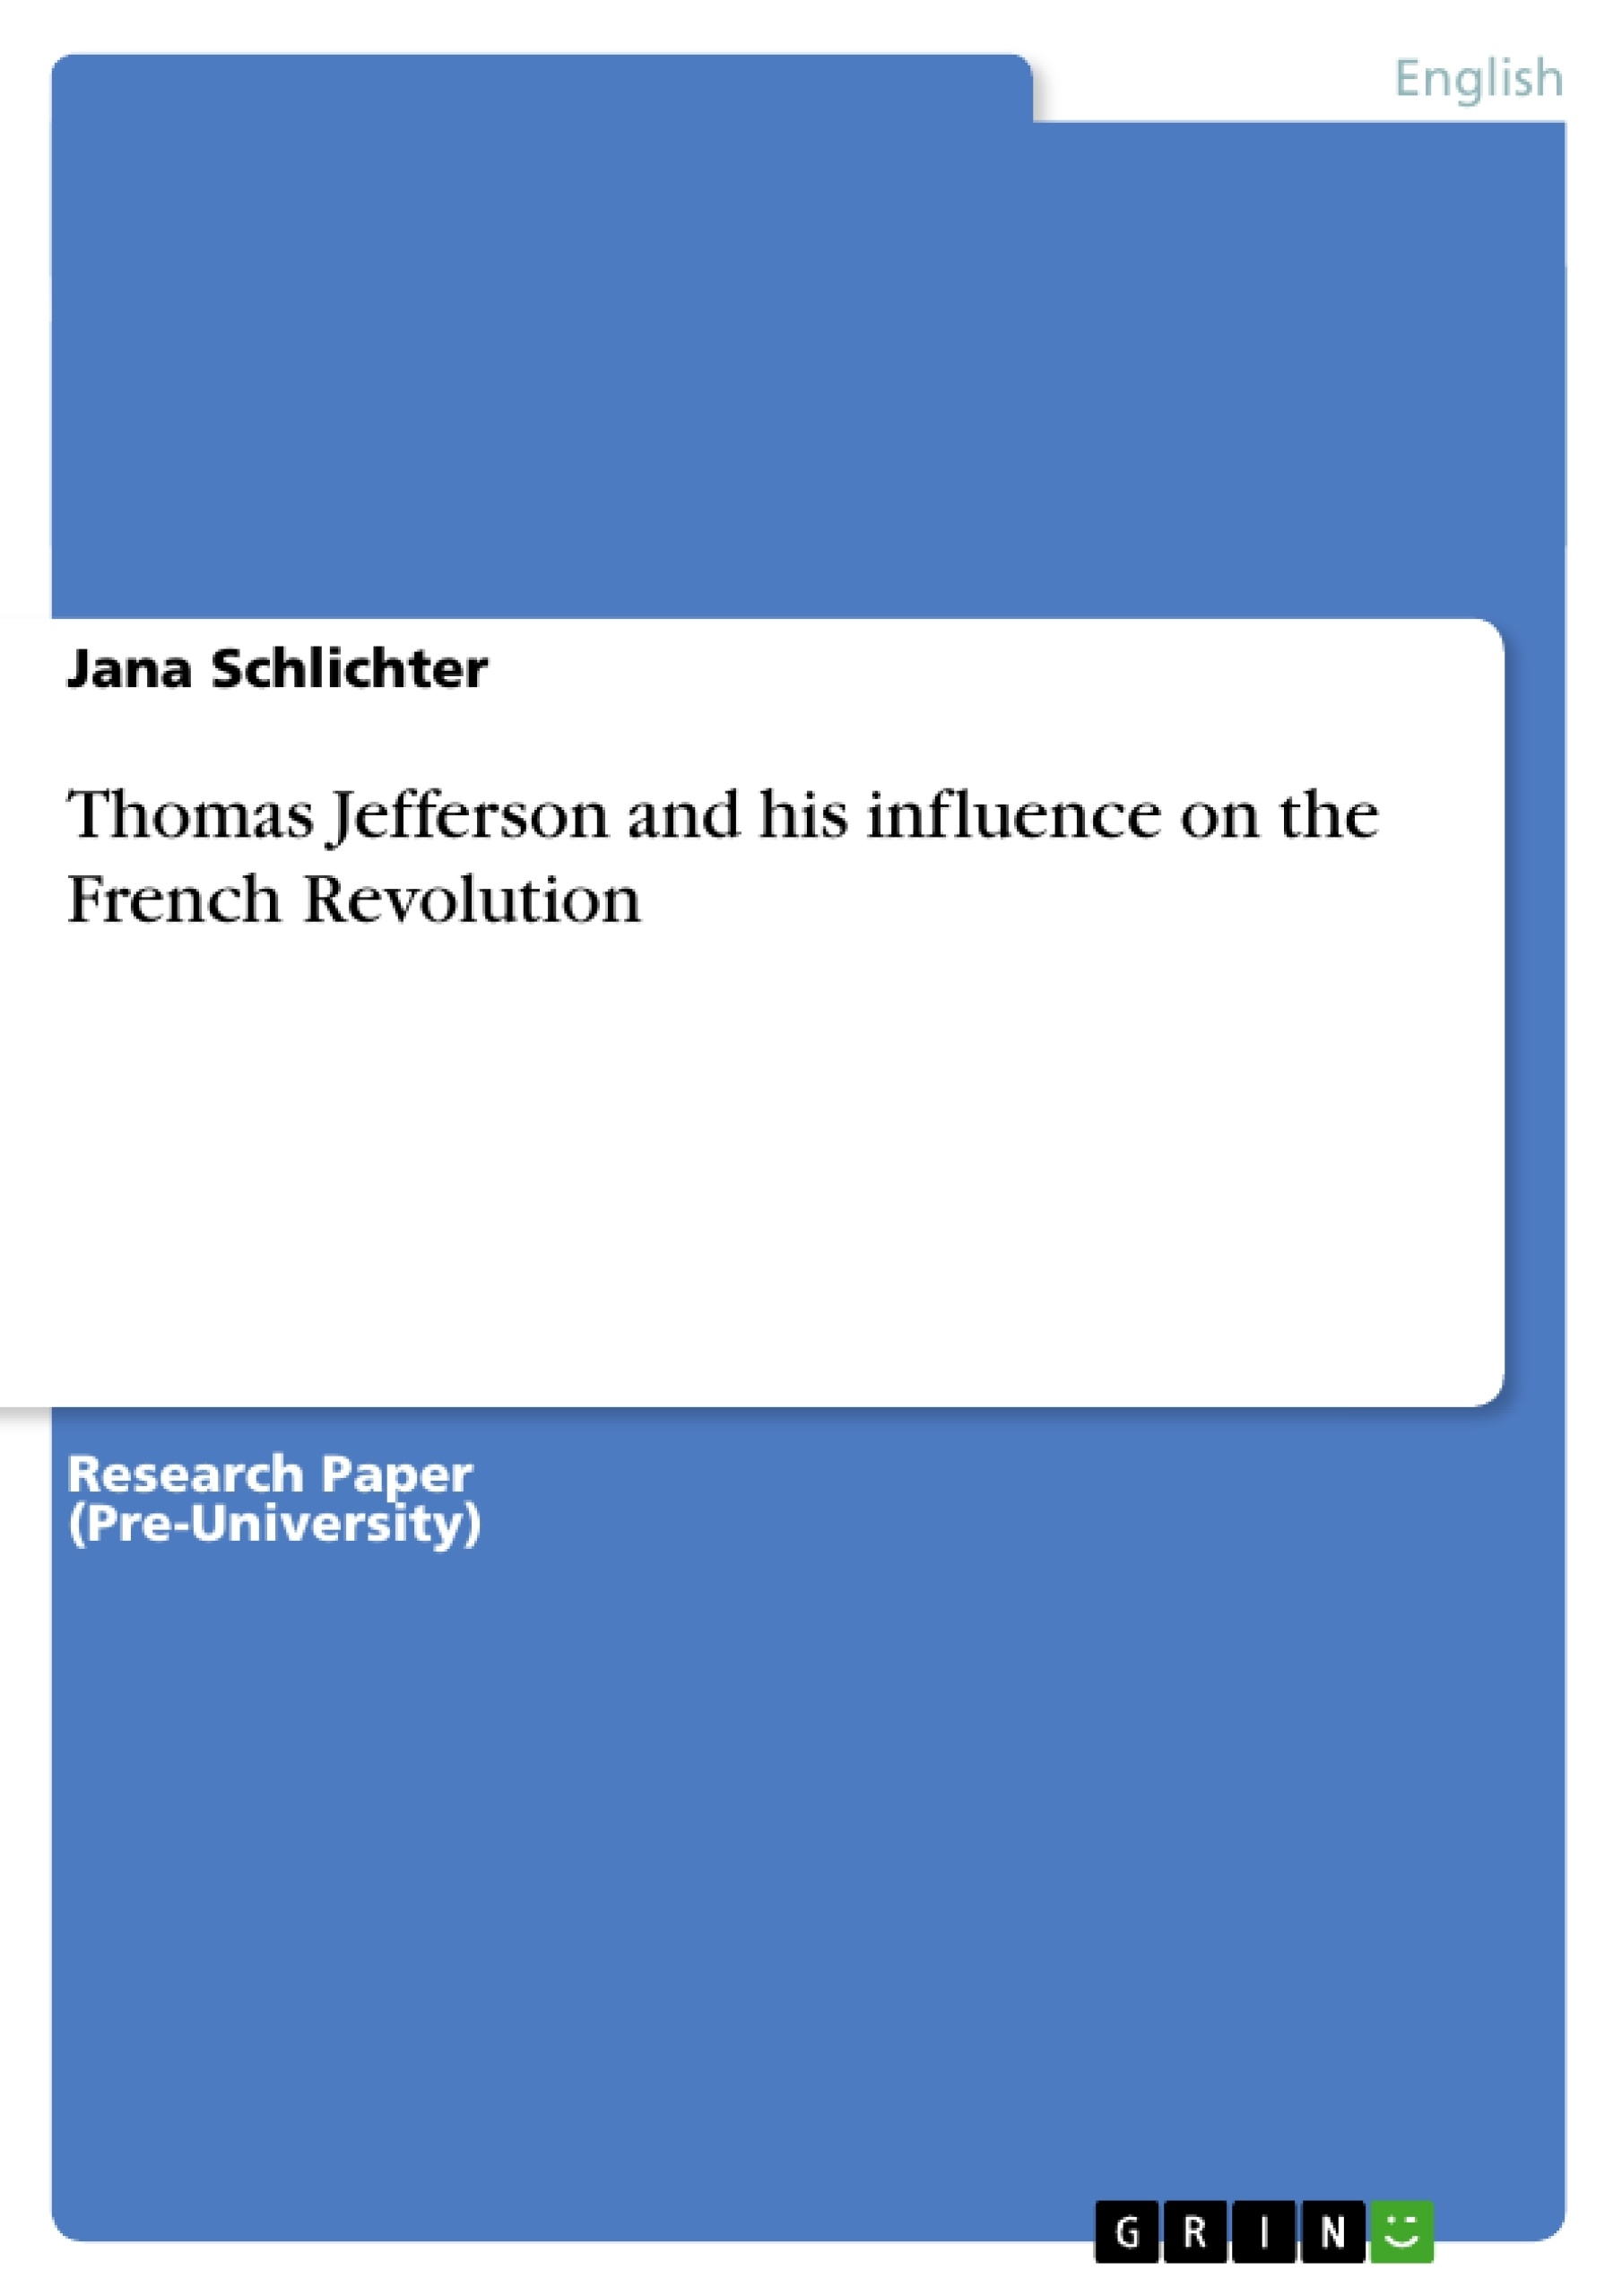 Title: Thomas Jefferson and his influence on the French Revolution